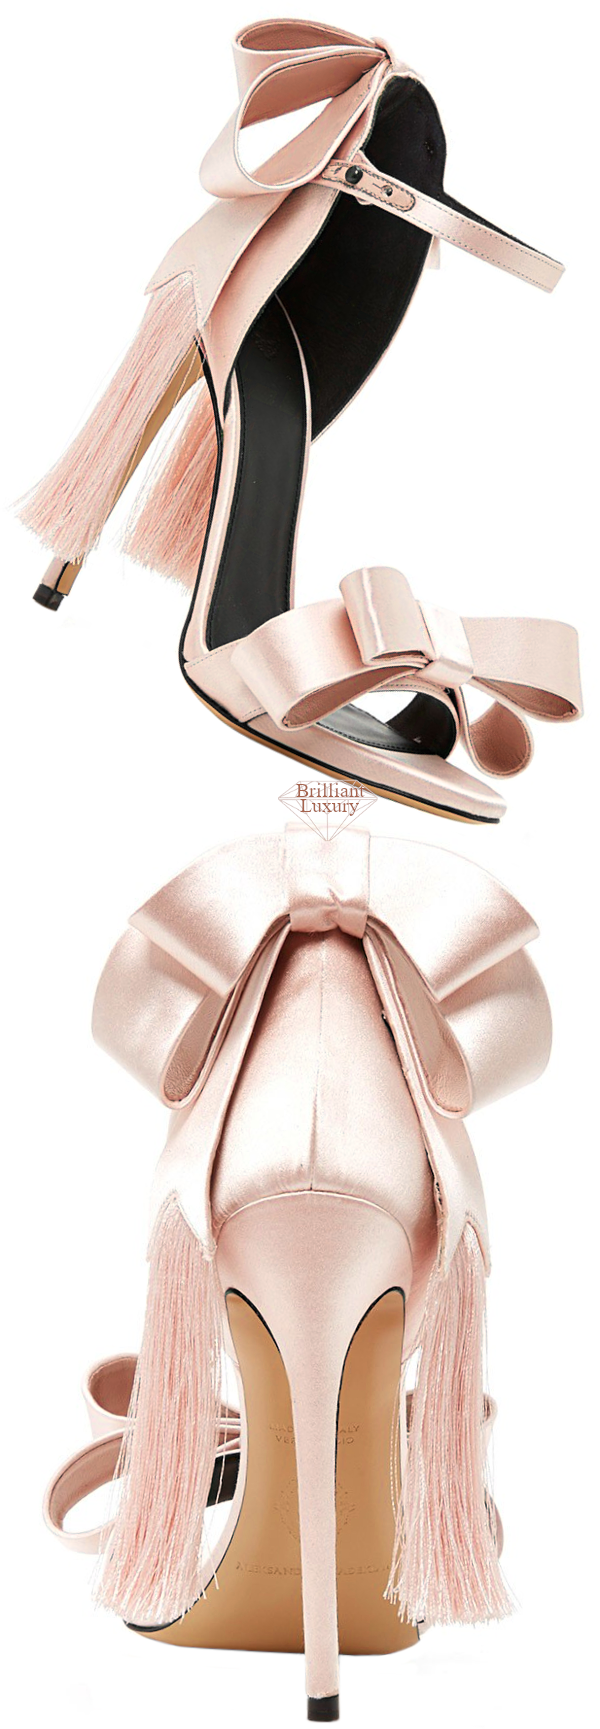 pink Adriana bow sandal #brilliantluxury